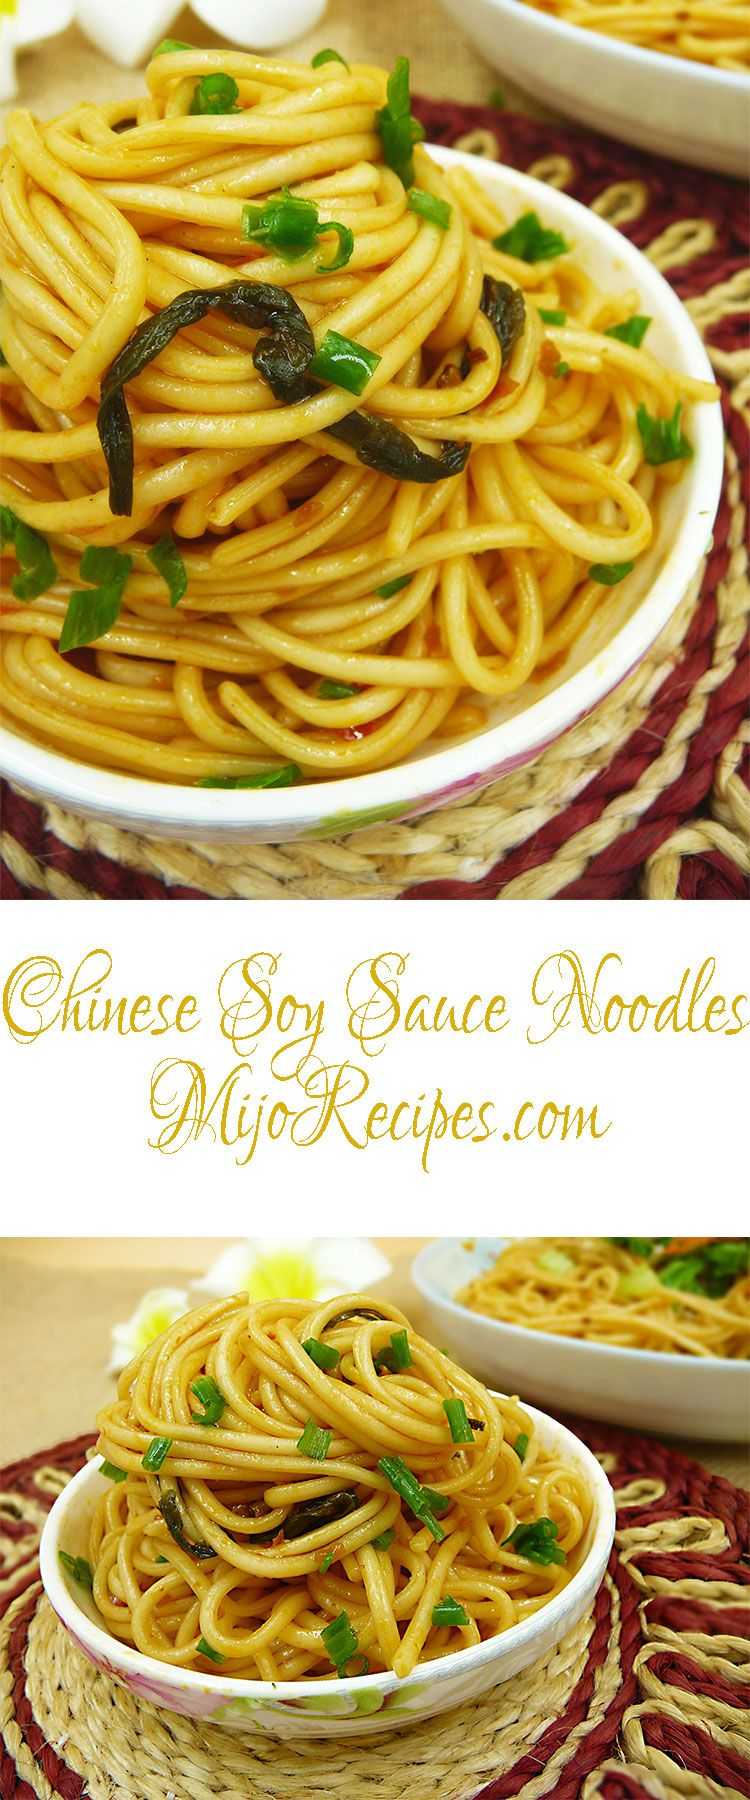 Easy noodle recipes soy sauce